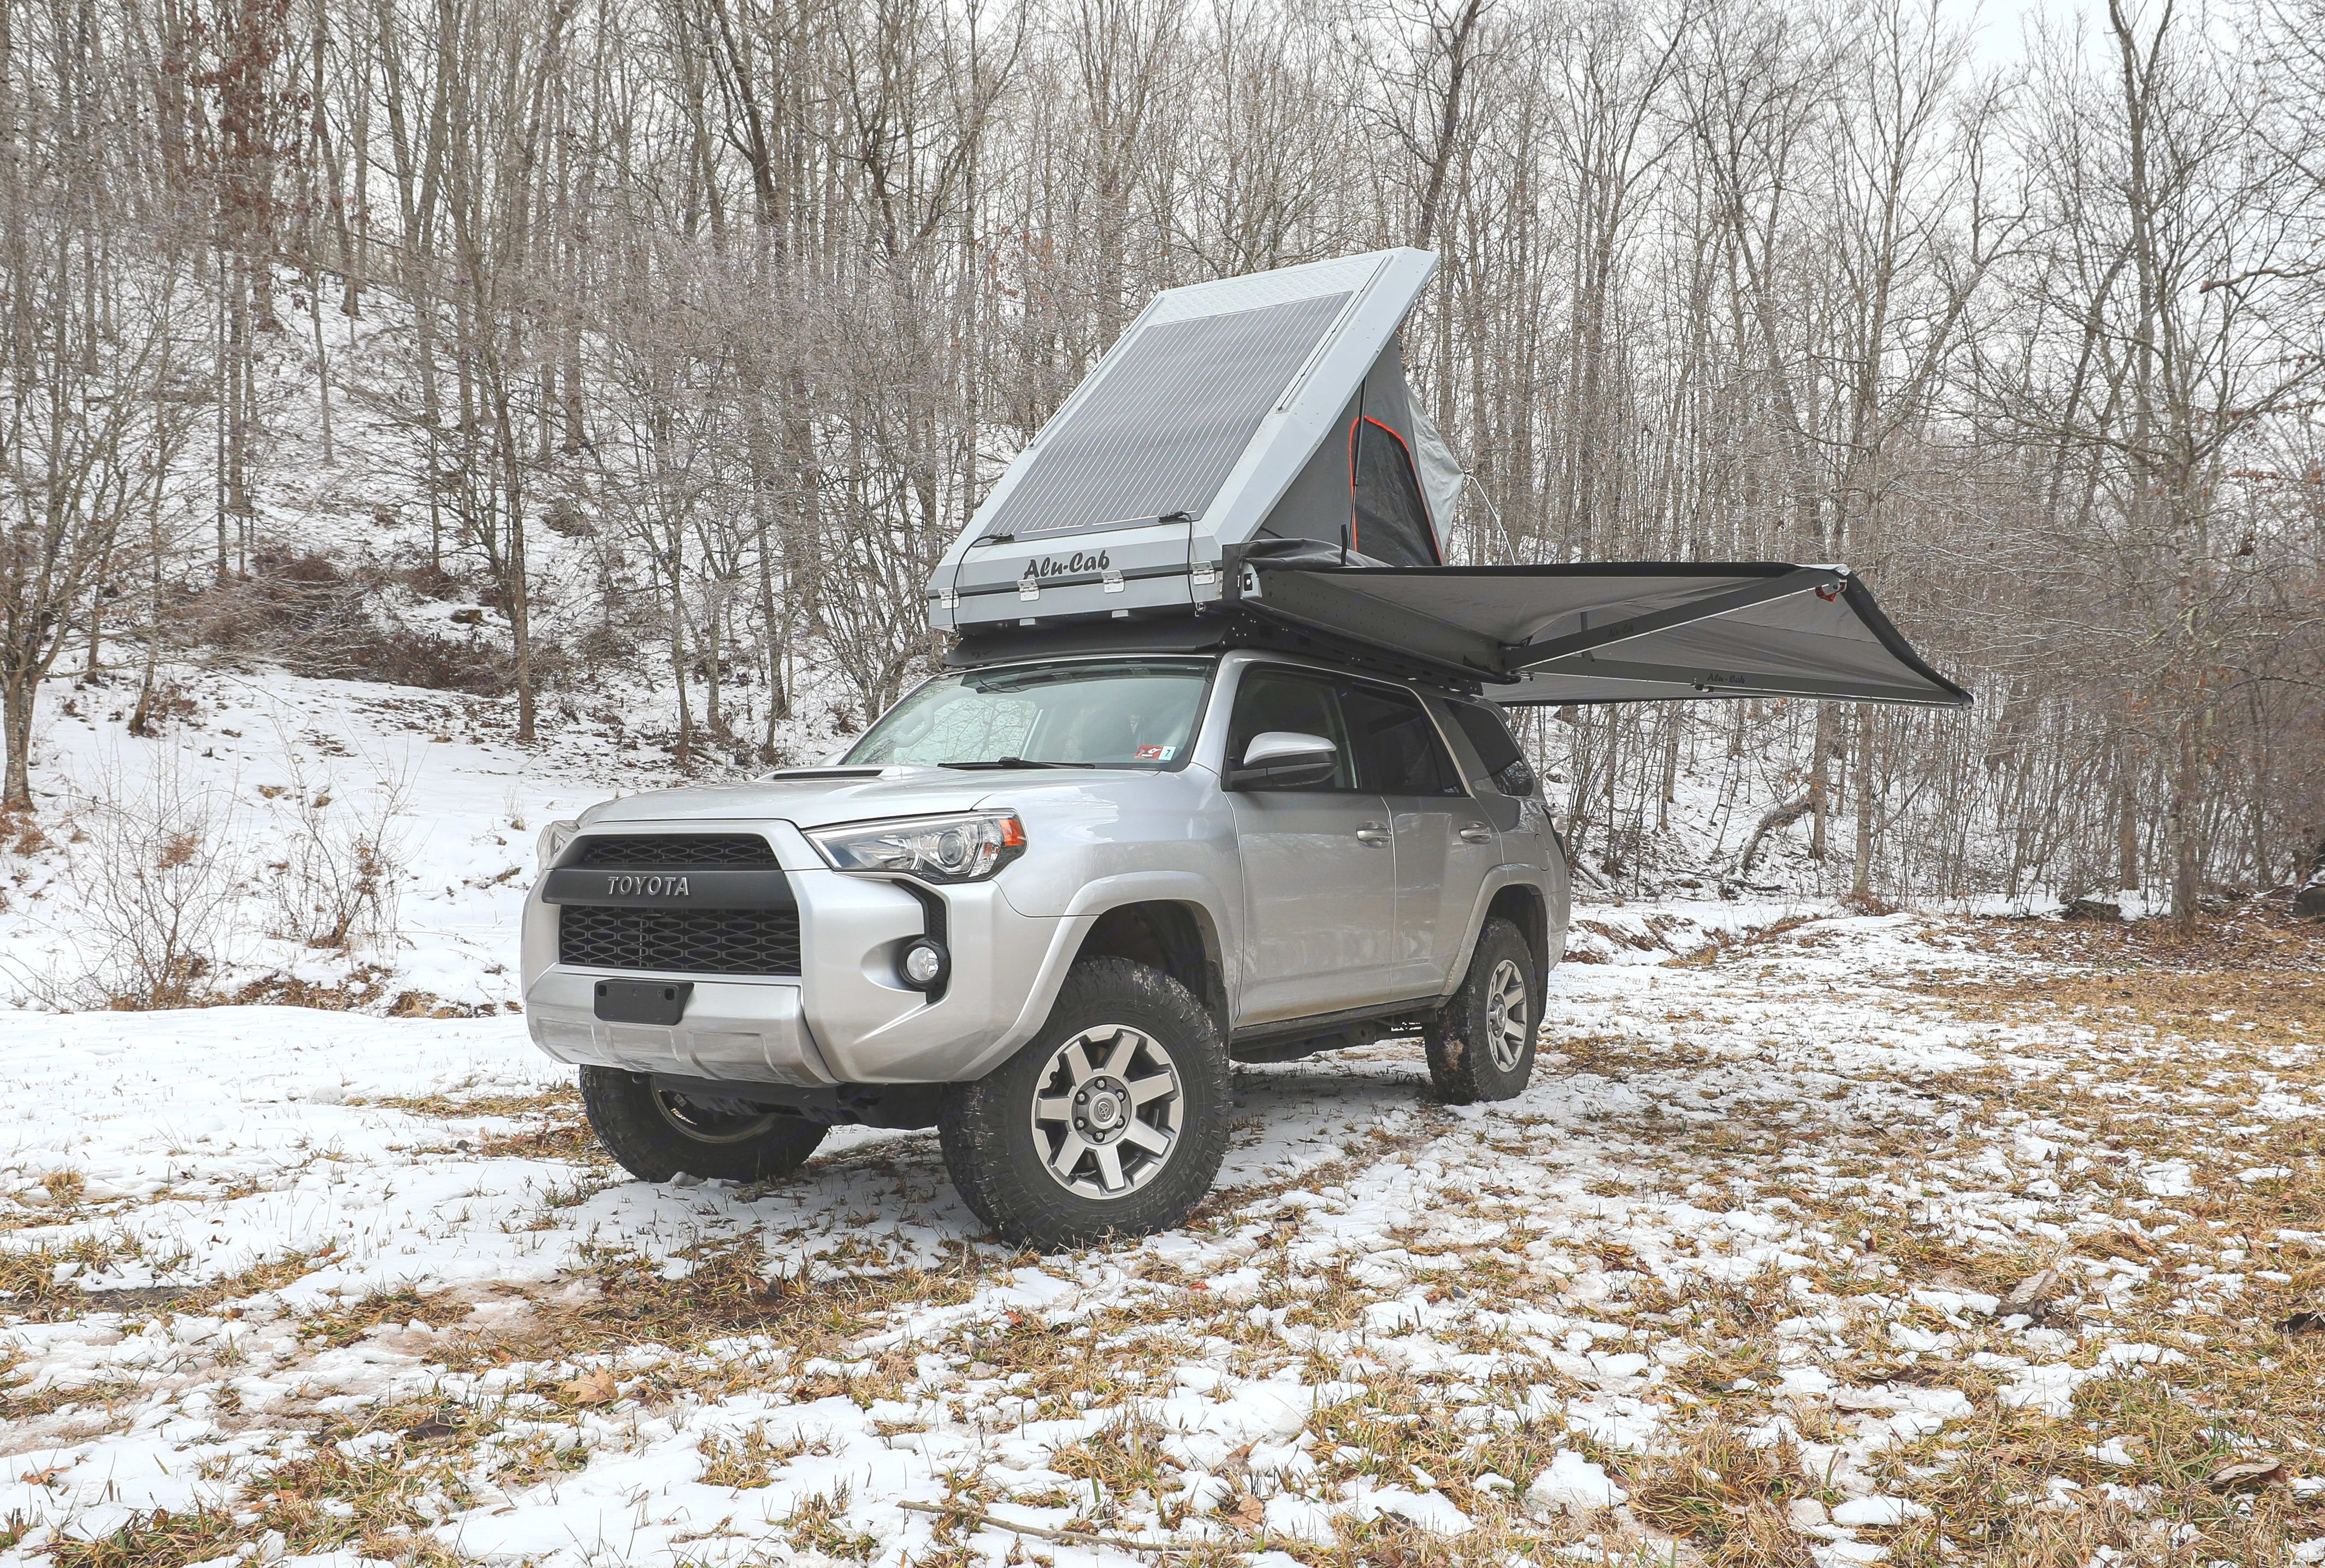 The tent and awning are easily deployed in under 2 min. making camp set up a breeze!. Toyota 4Runner 2015